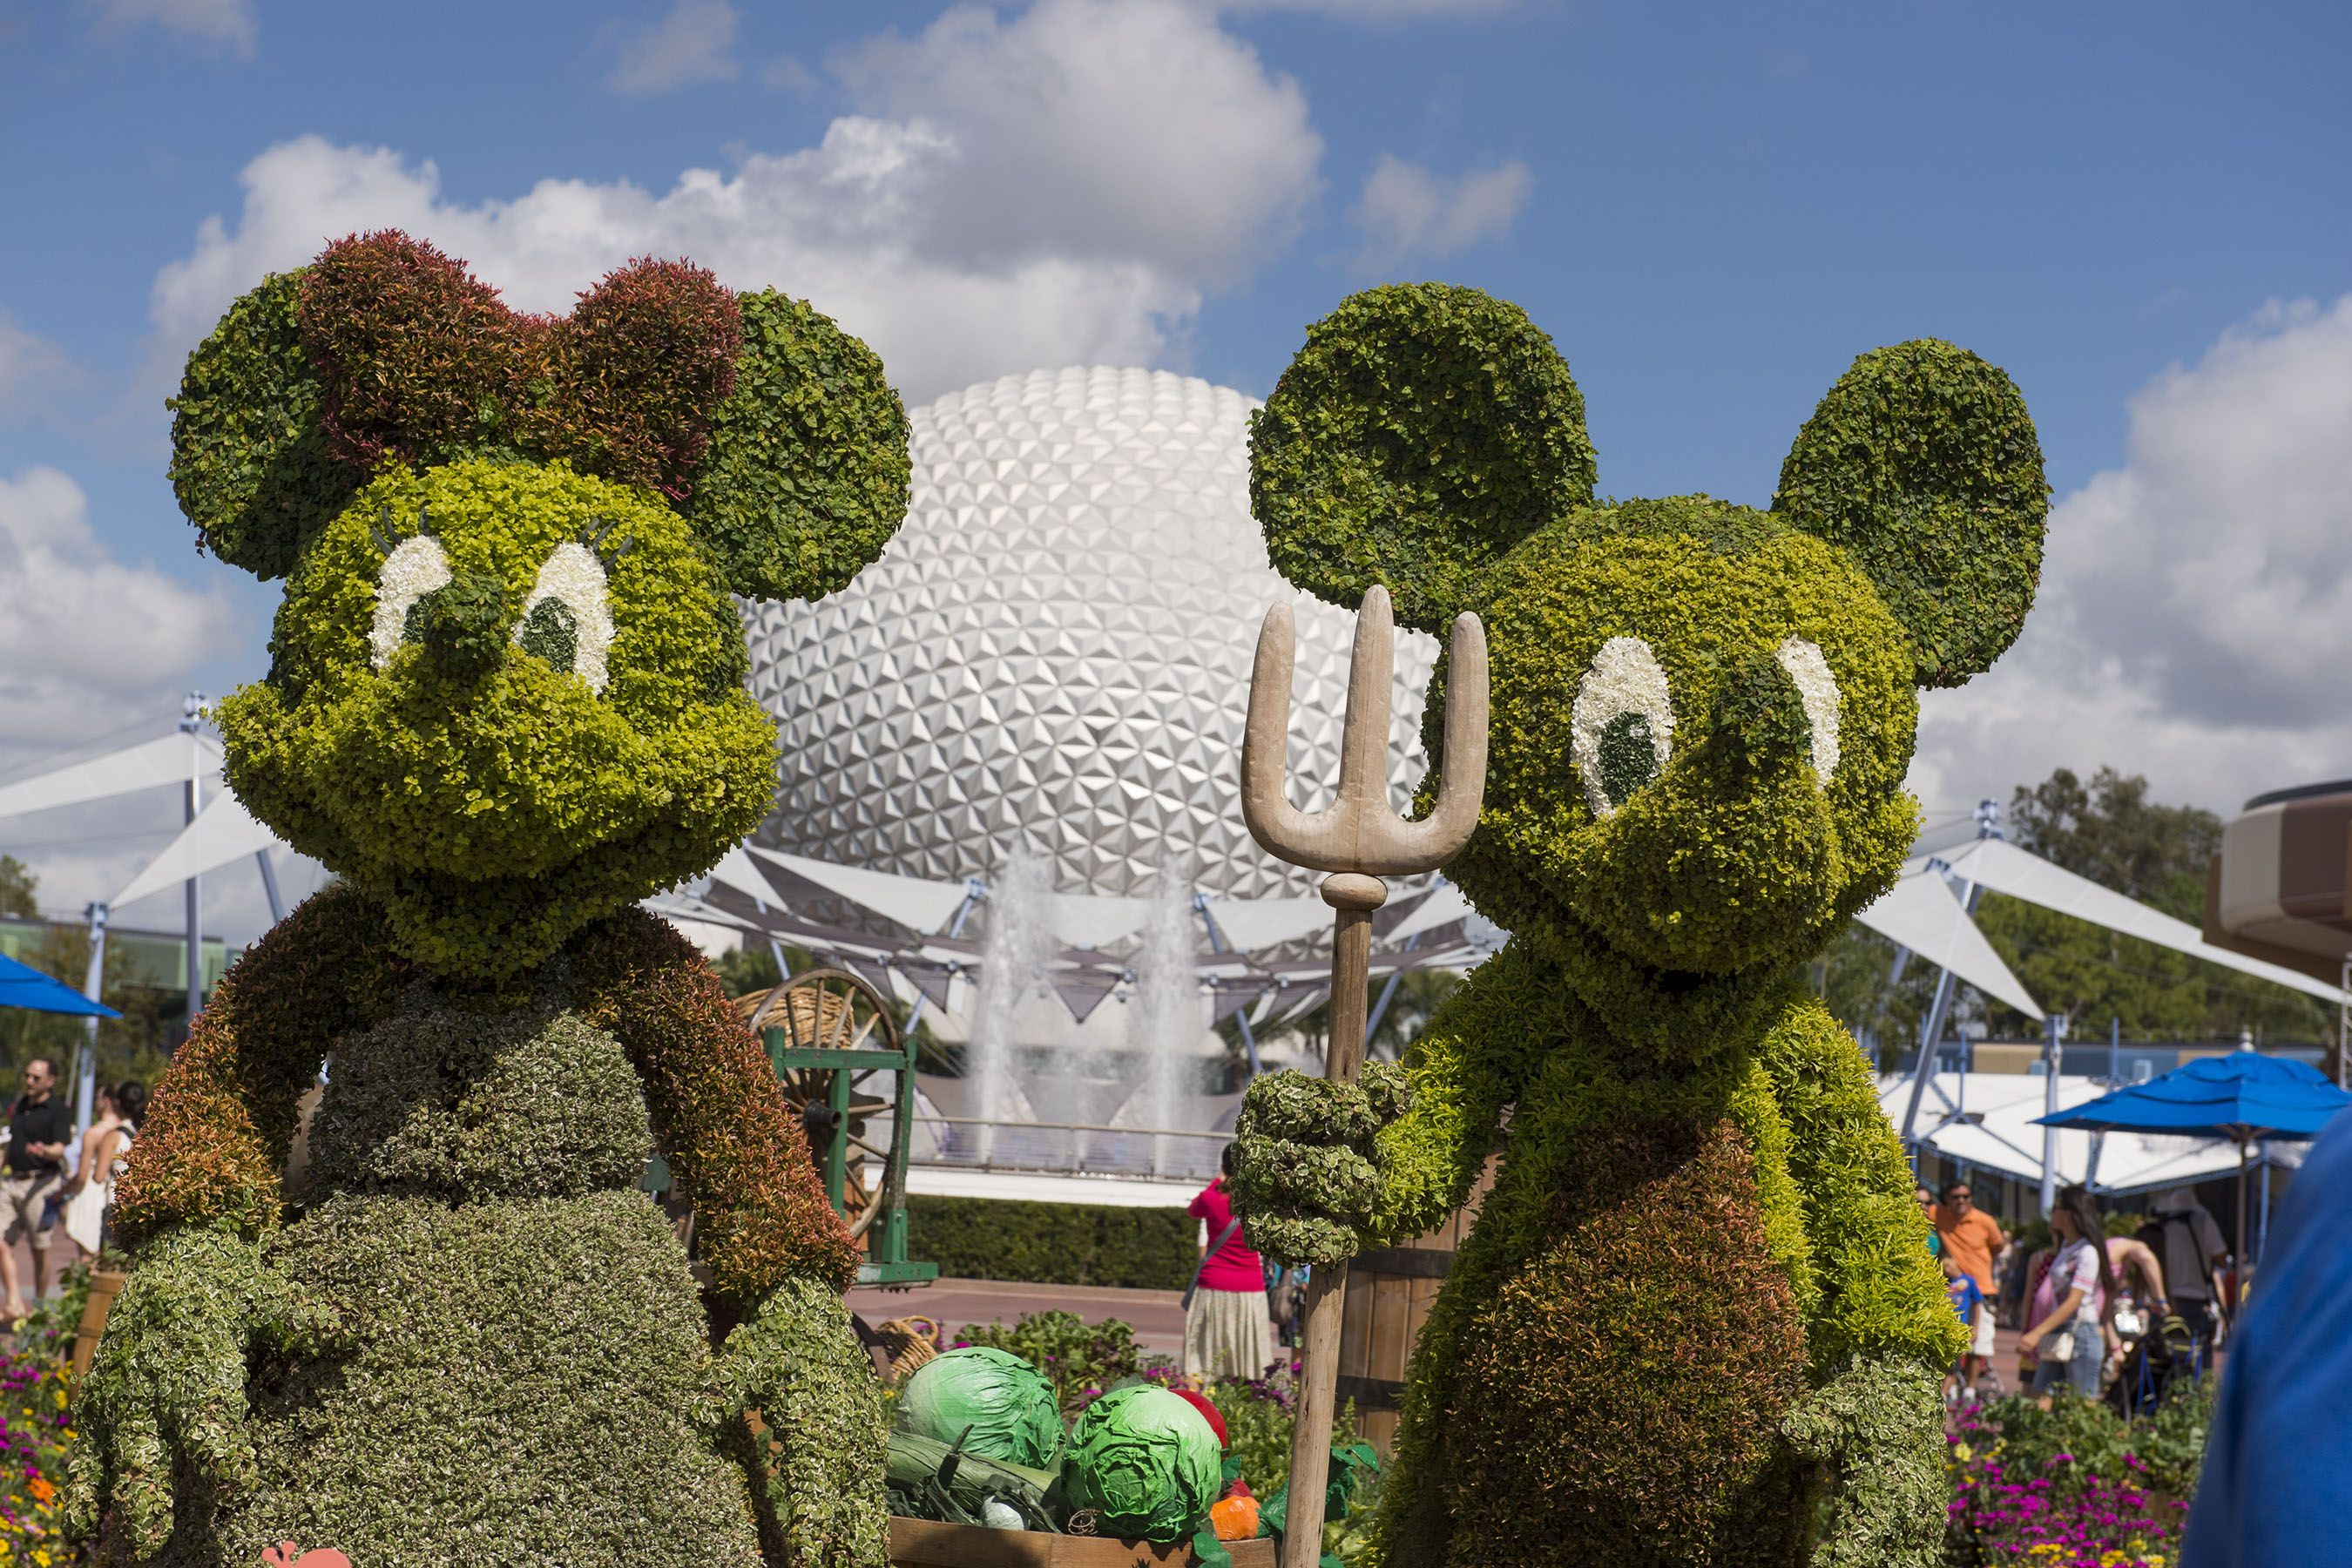 A Guide to Epcot's International Flower and Garden Festival